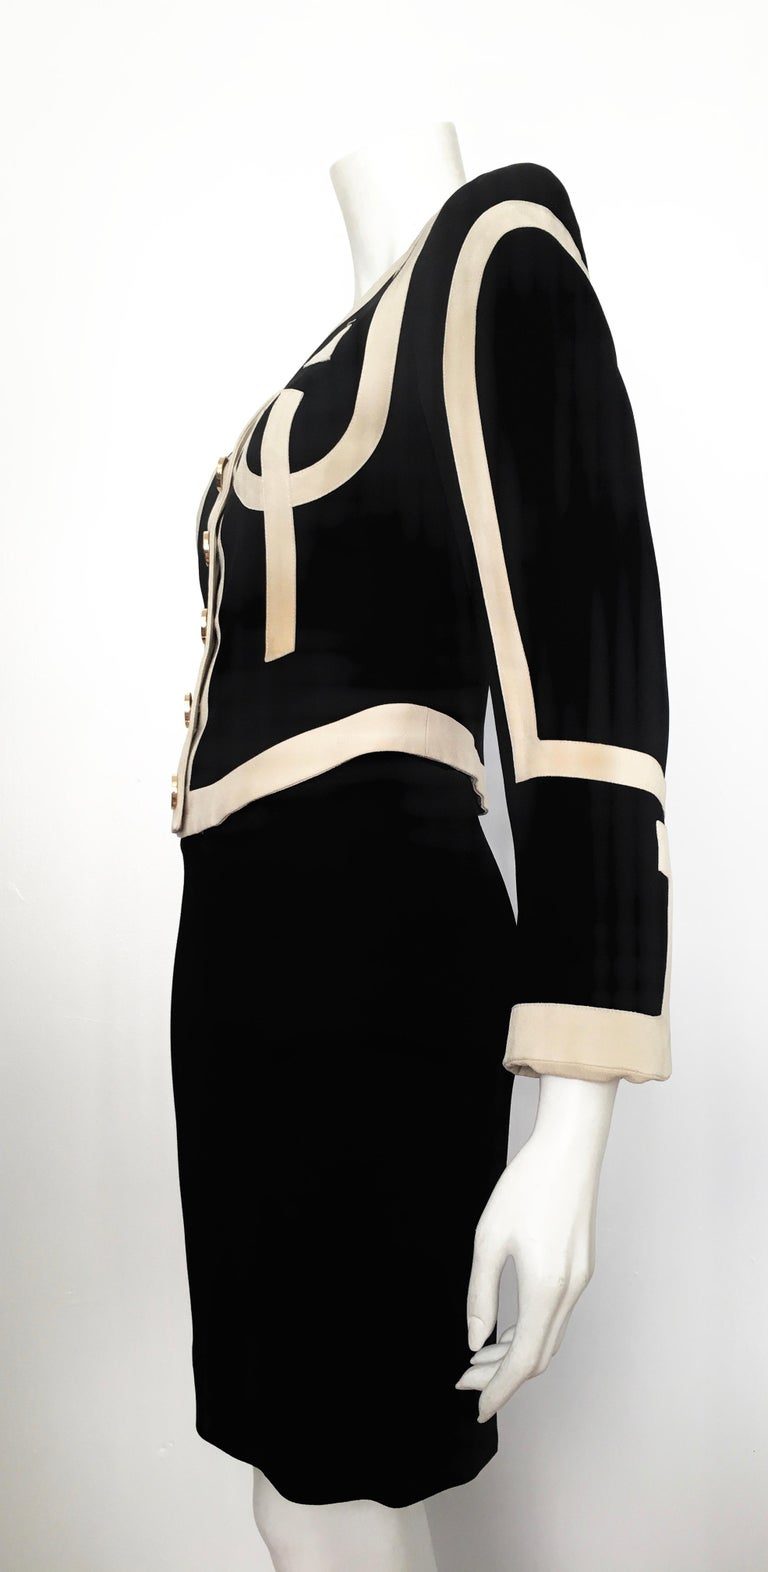 Moschino 1990s Black & Cream Jacket & Skirt Suit Size 4. For Sale 9